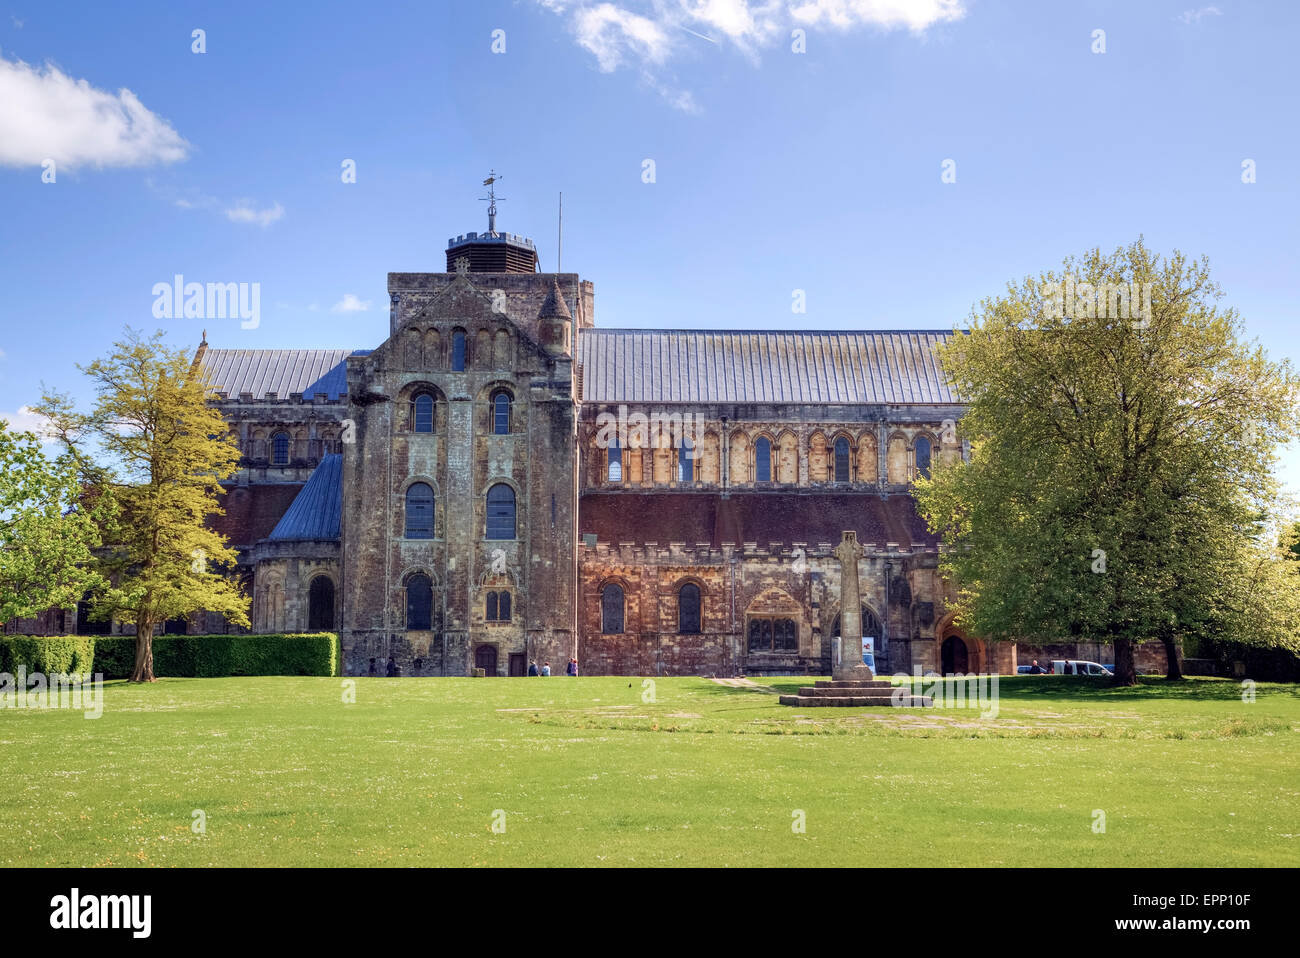 Romsey Abbey, Romsey, Hampshire, England, UK - Stock Image